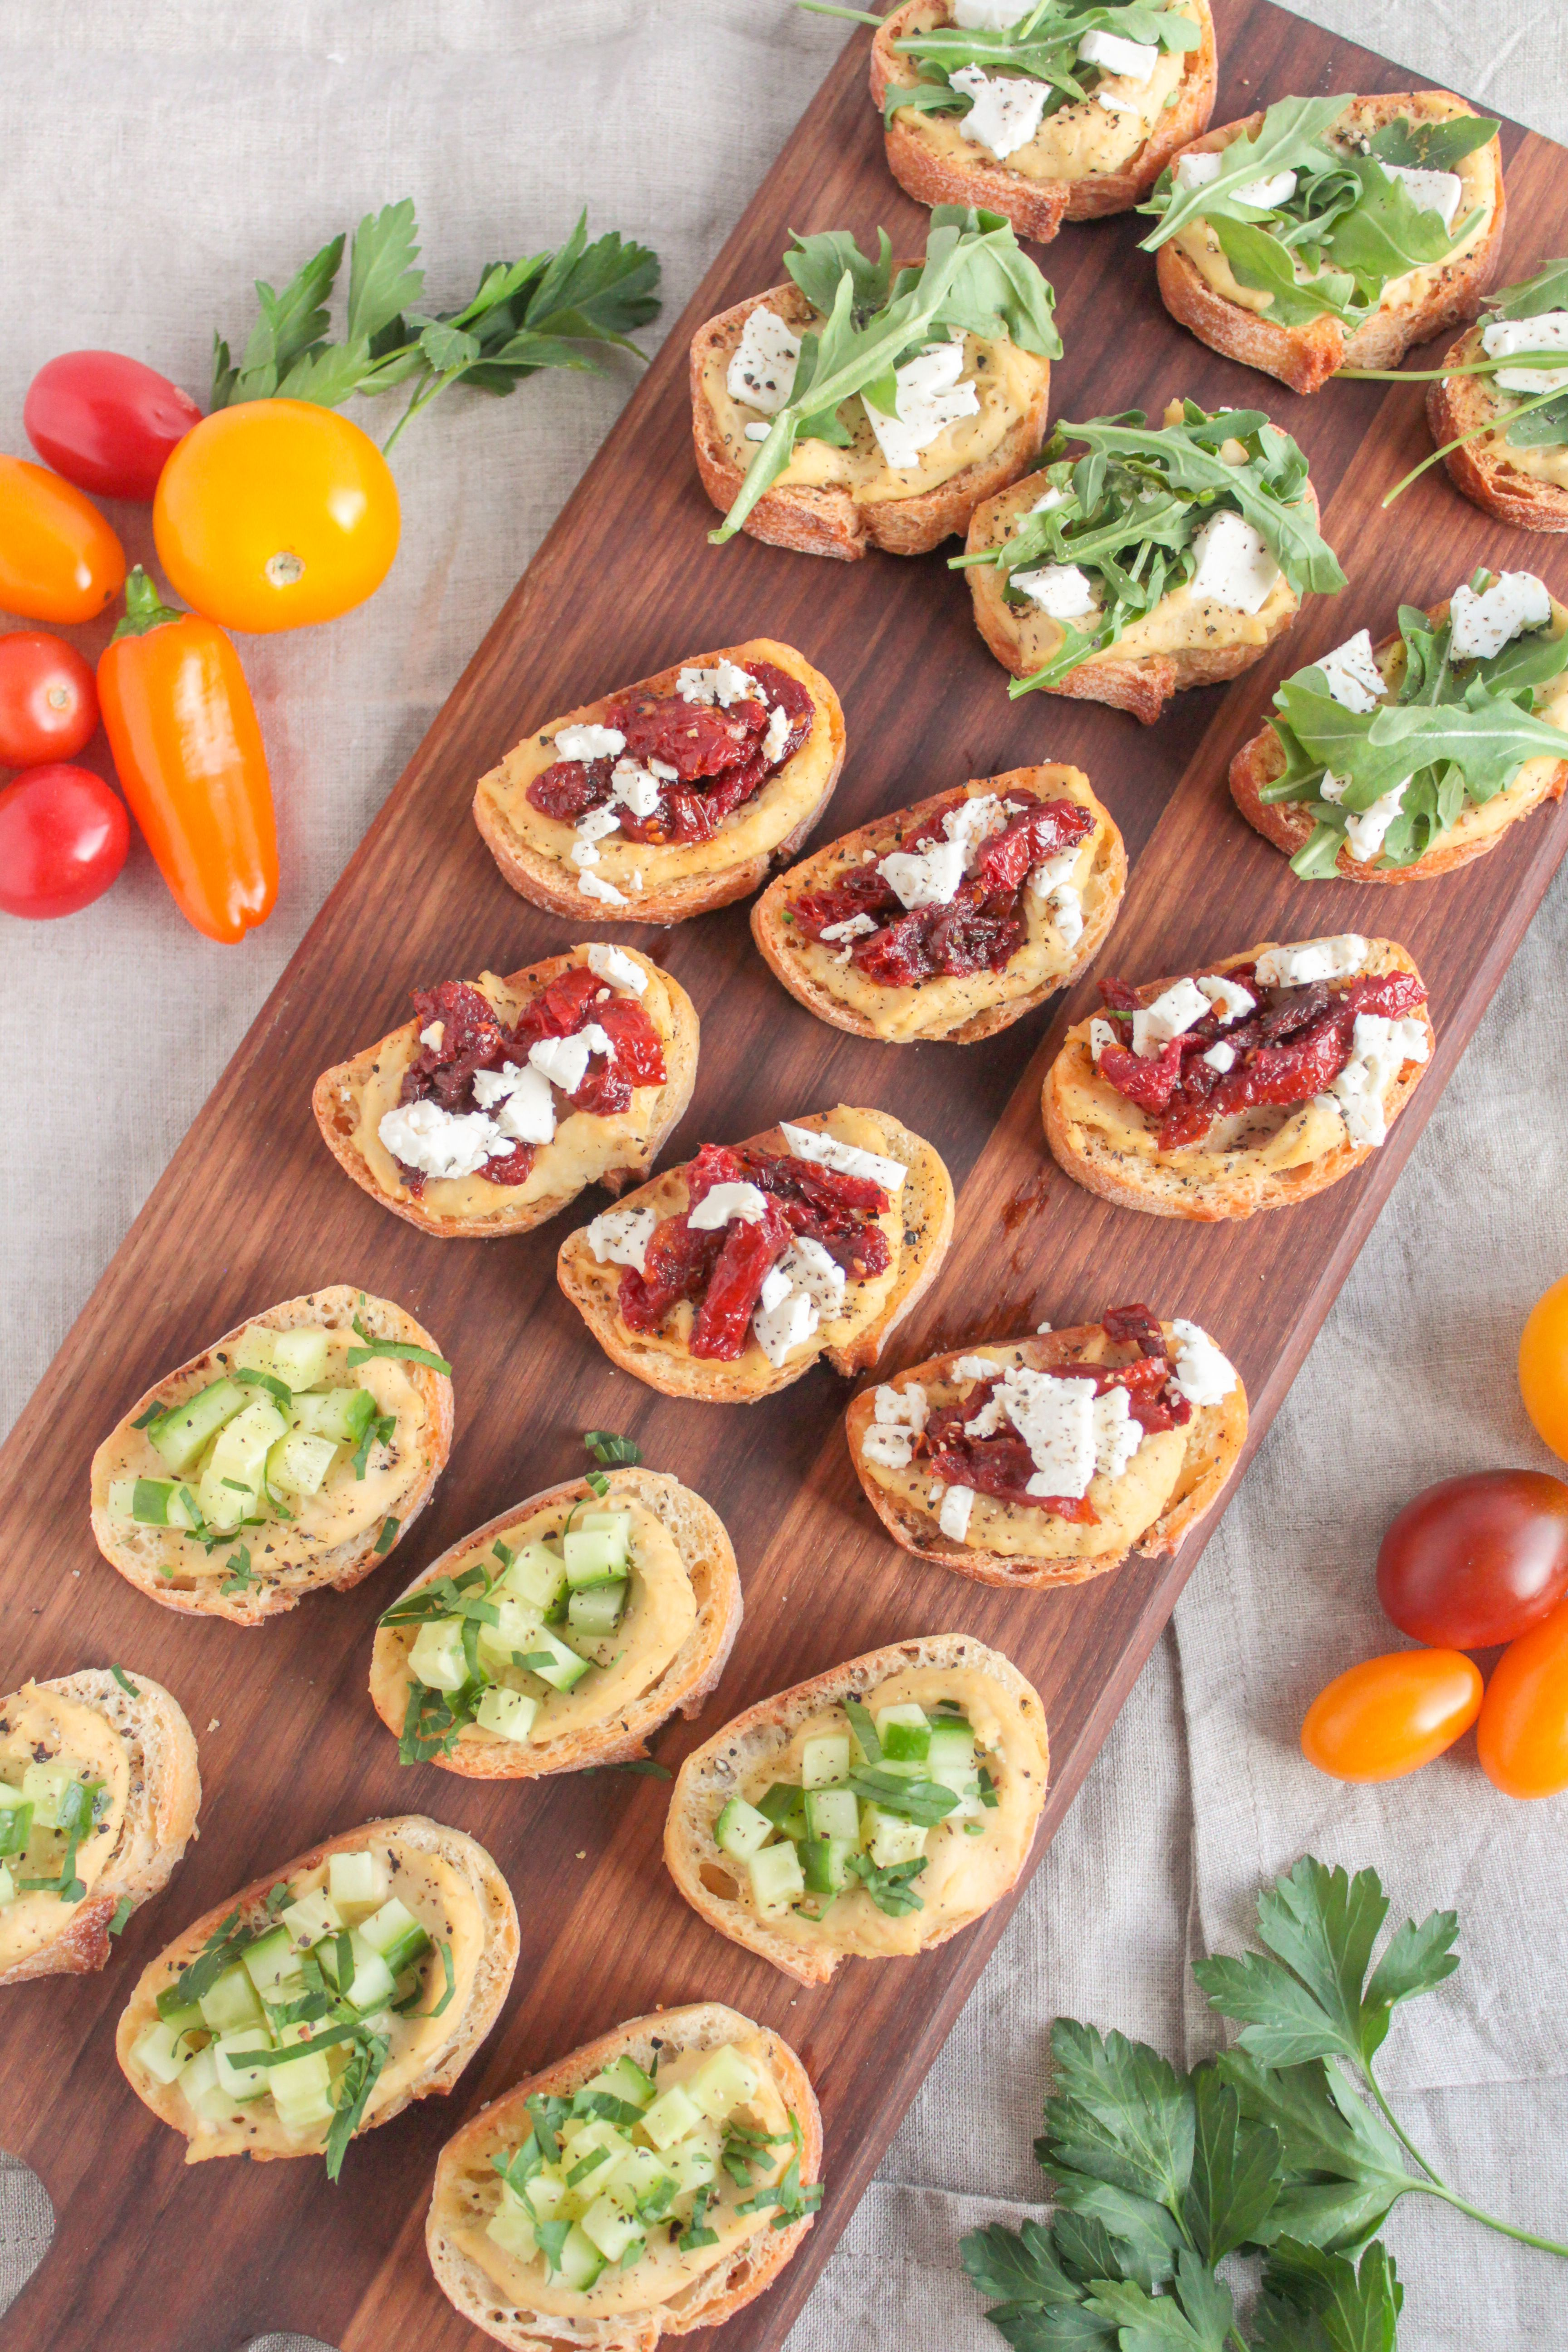 healthy throw together super bowl snacks ideas | snacks ideas